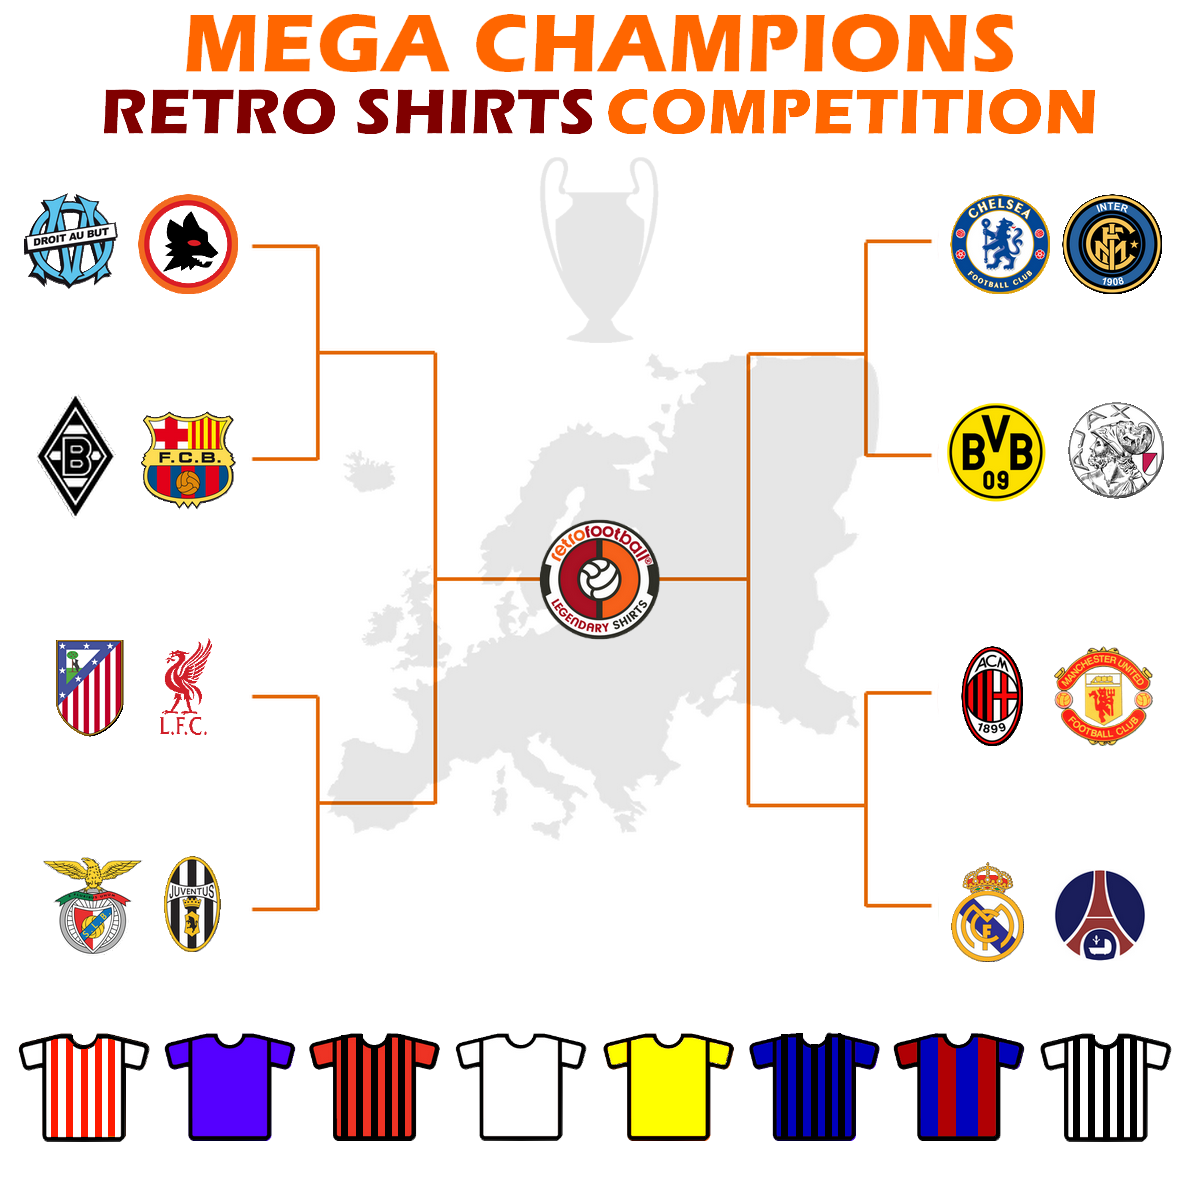 Table Mega Champions Retro Shirts Competition